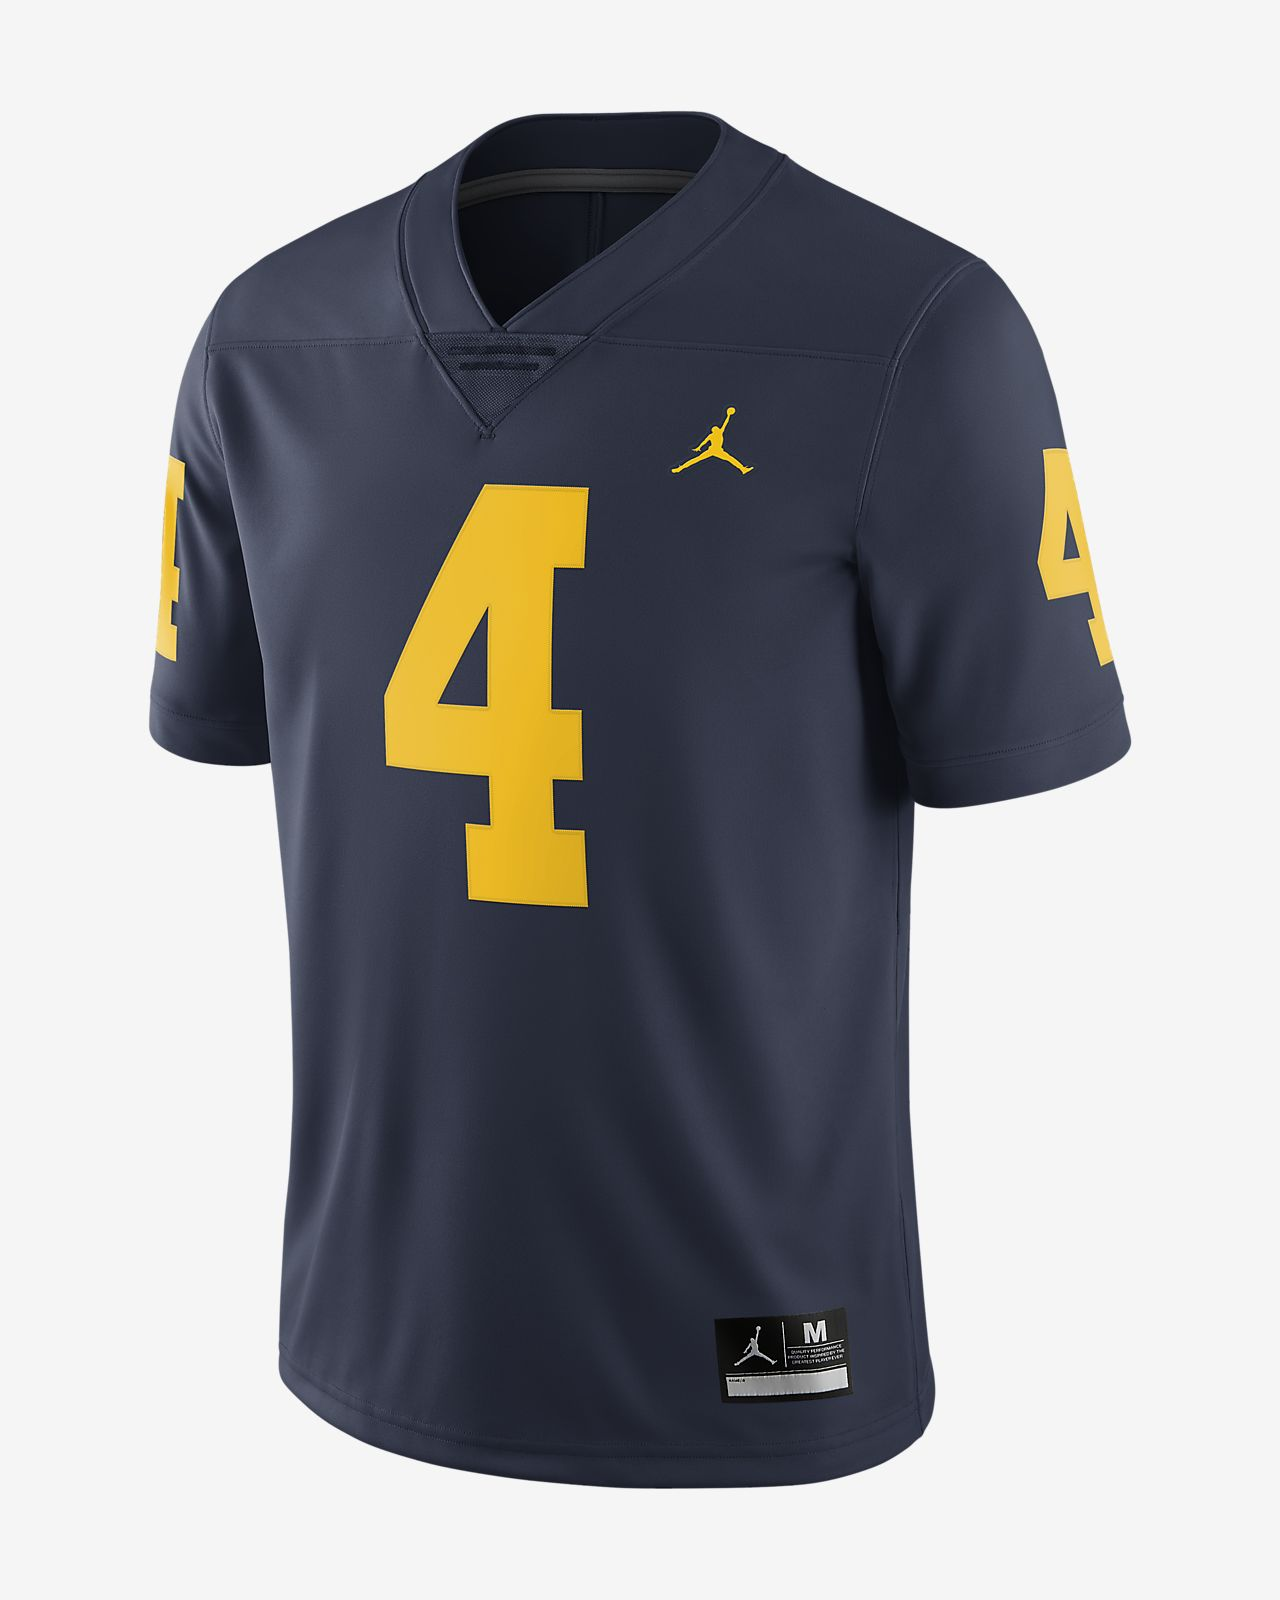 c99928f5e2ca Jordan College Limited (Michigan) Men s Football Jersey. Nike.com